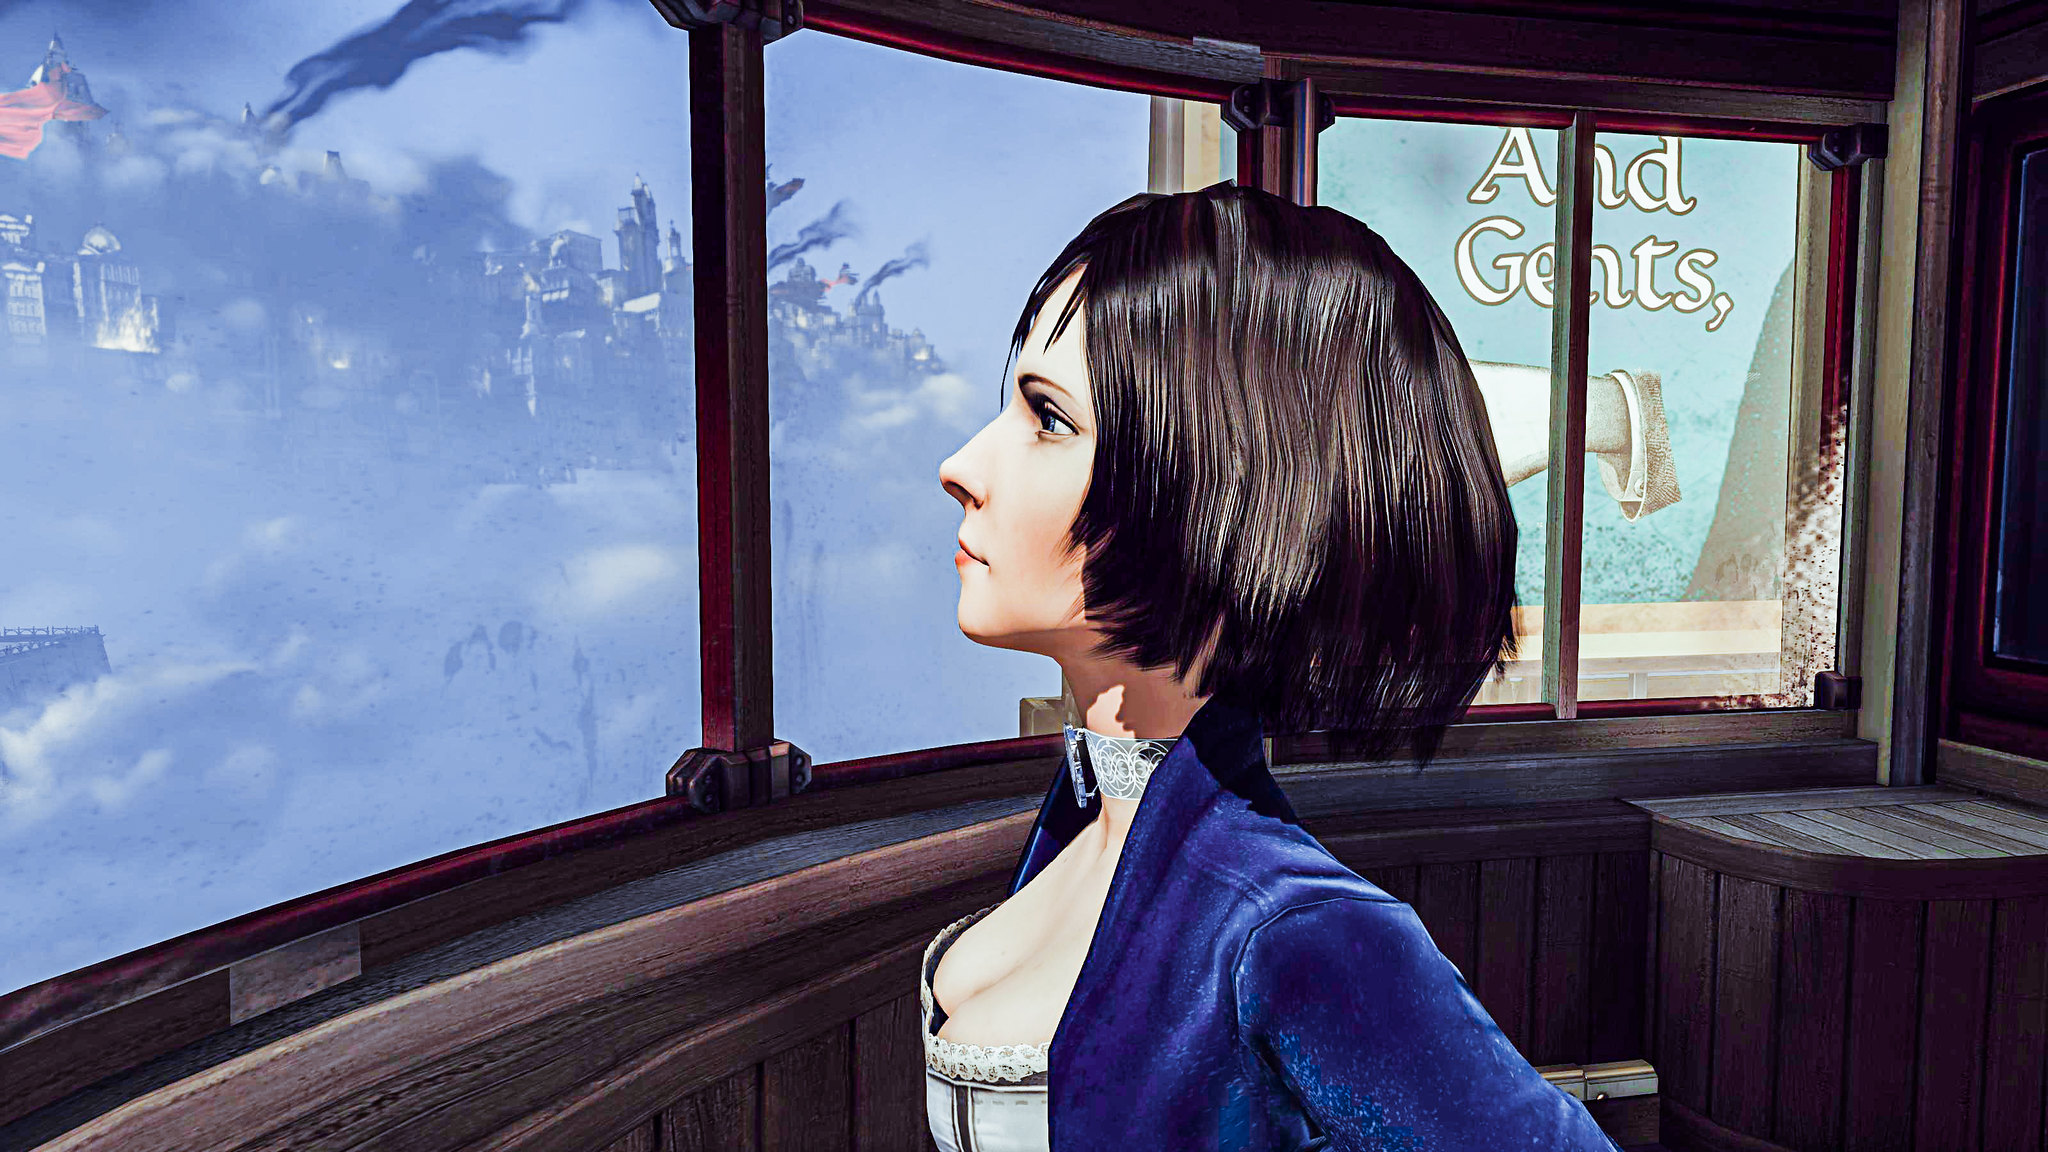 15884849436_cee18c0be5_k.jpg - BioShock Infinite